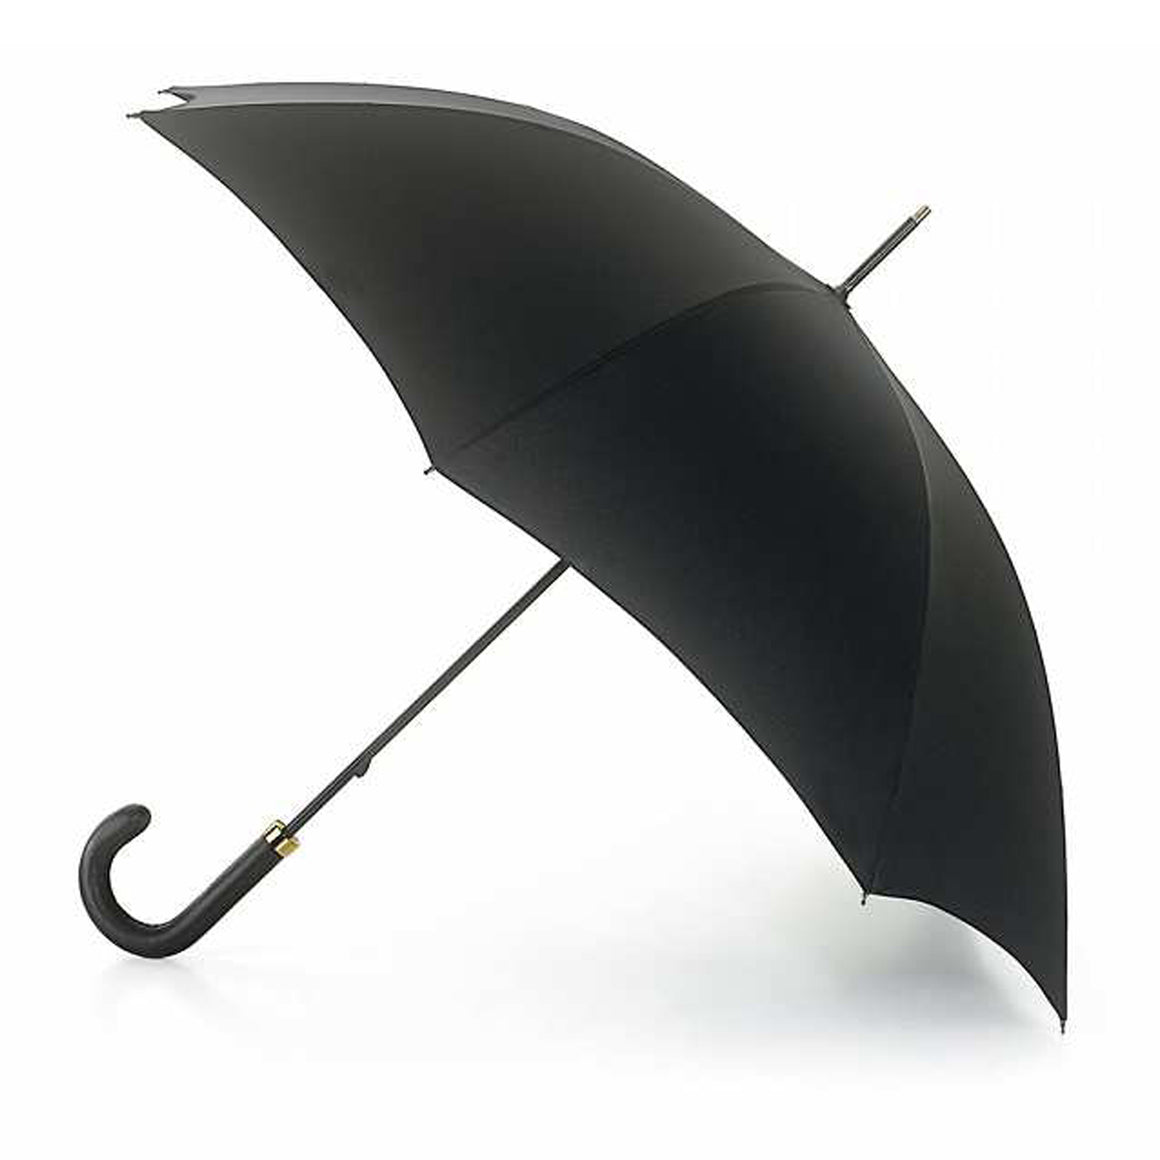 Fulton Minister Umbrella in Black